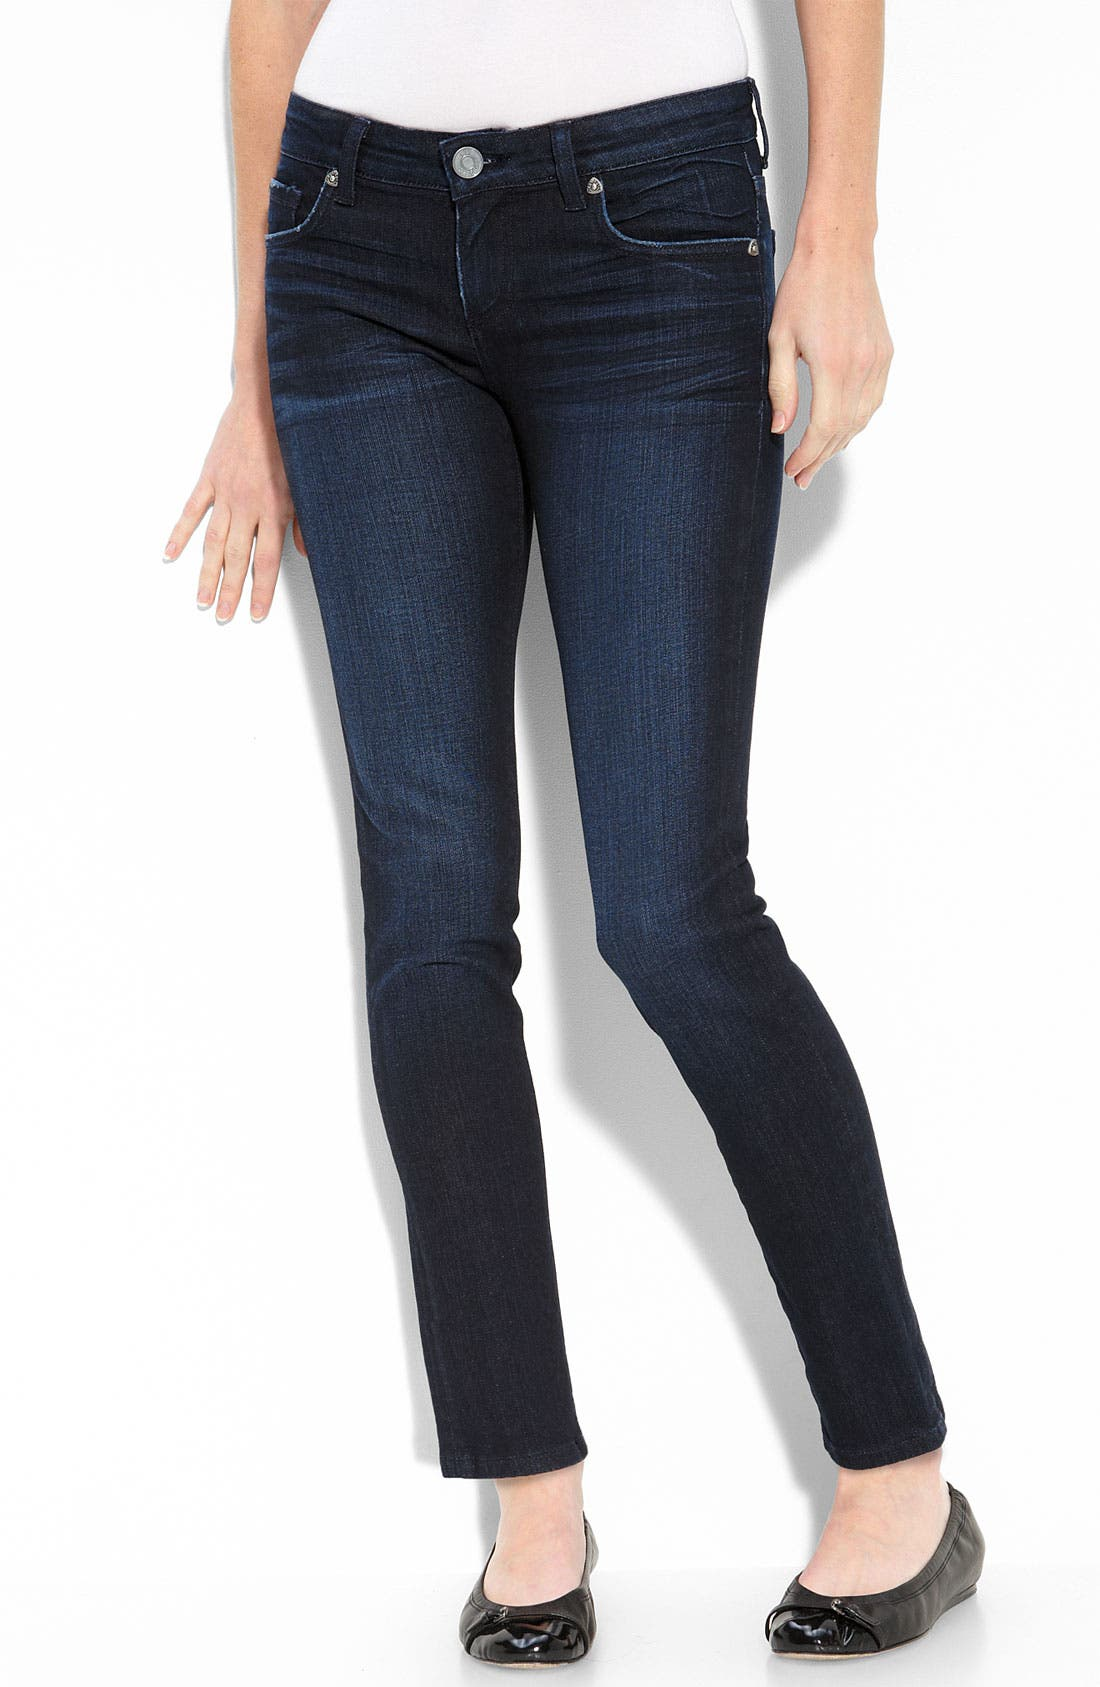 Alternate Image 1 Selected - KUT from the Kloth 'Audrey' Skinny Stretch Ankle Jeans (Petite)